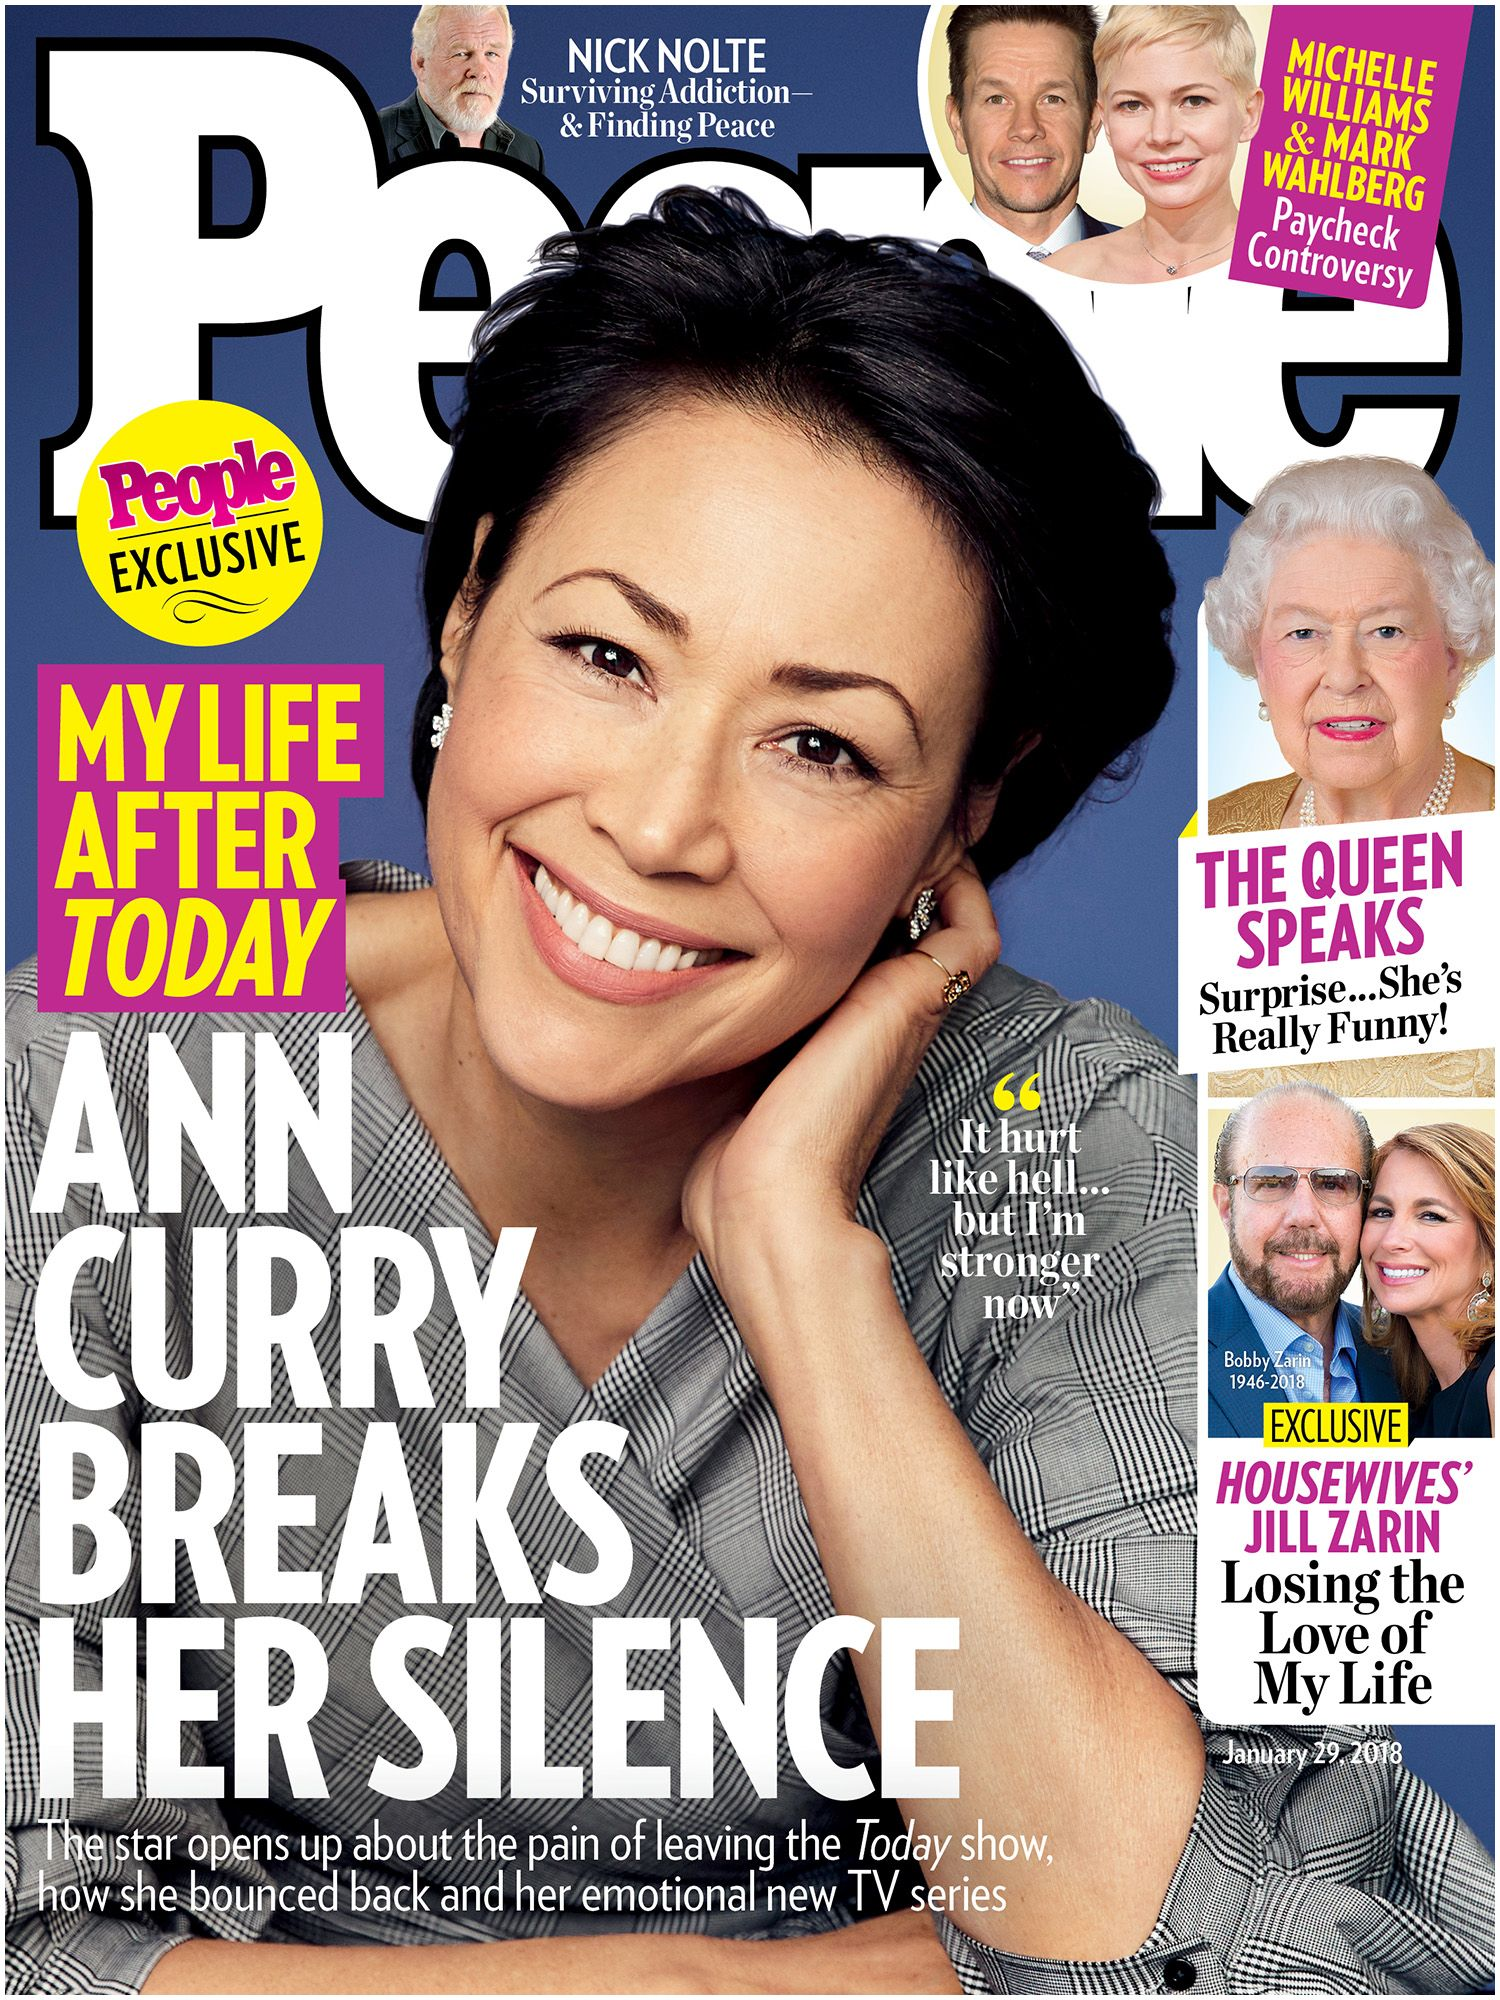 Unsubscribe People Magazine Ann Curry On Her Reaction to the Matt Lauer Scandal